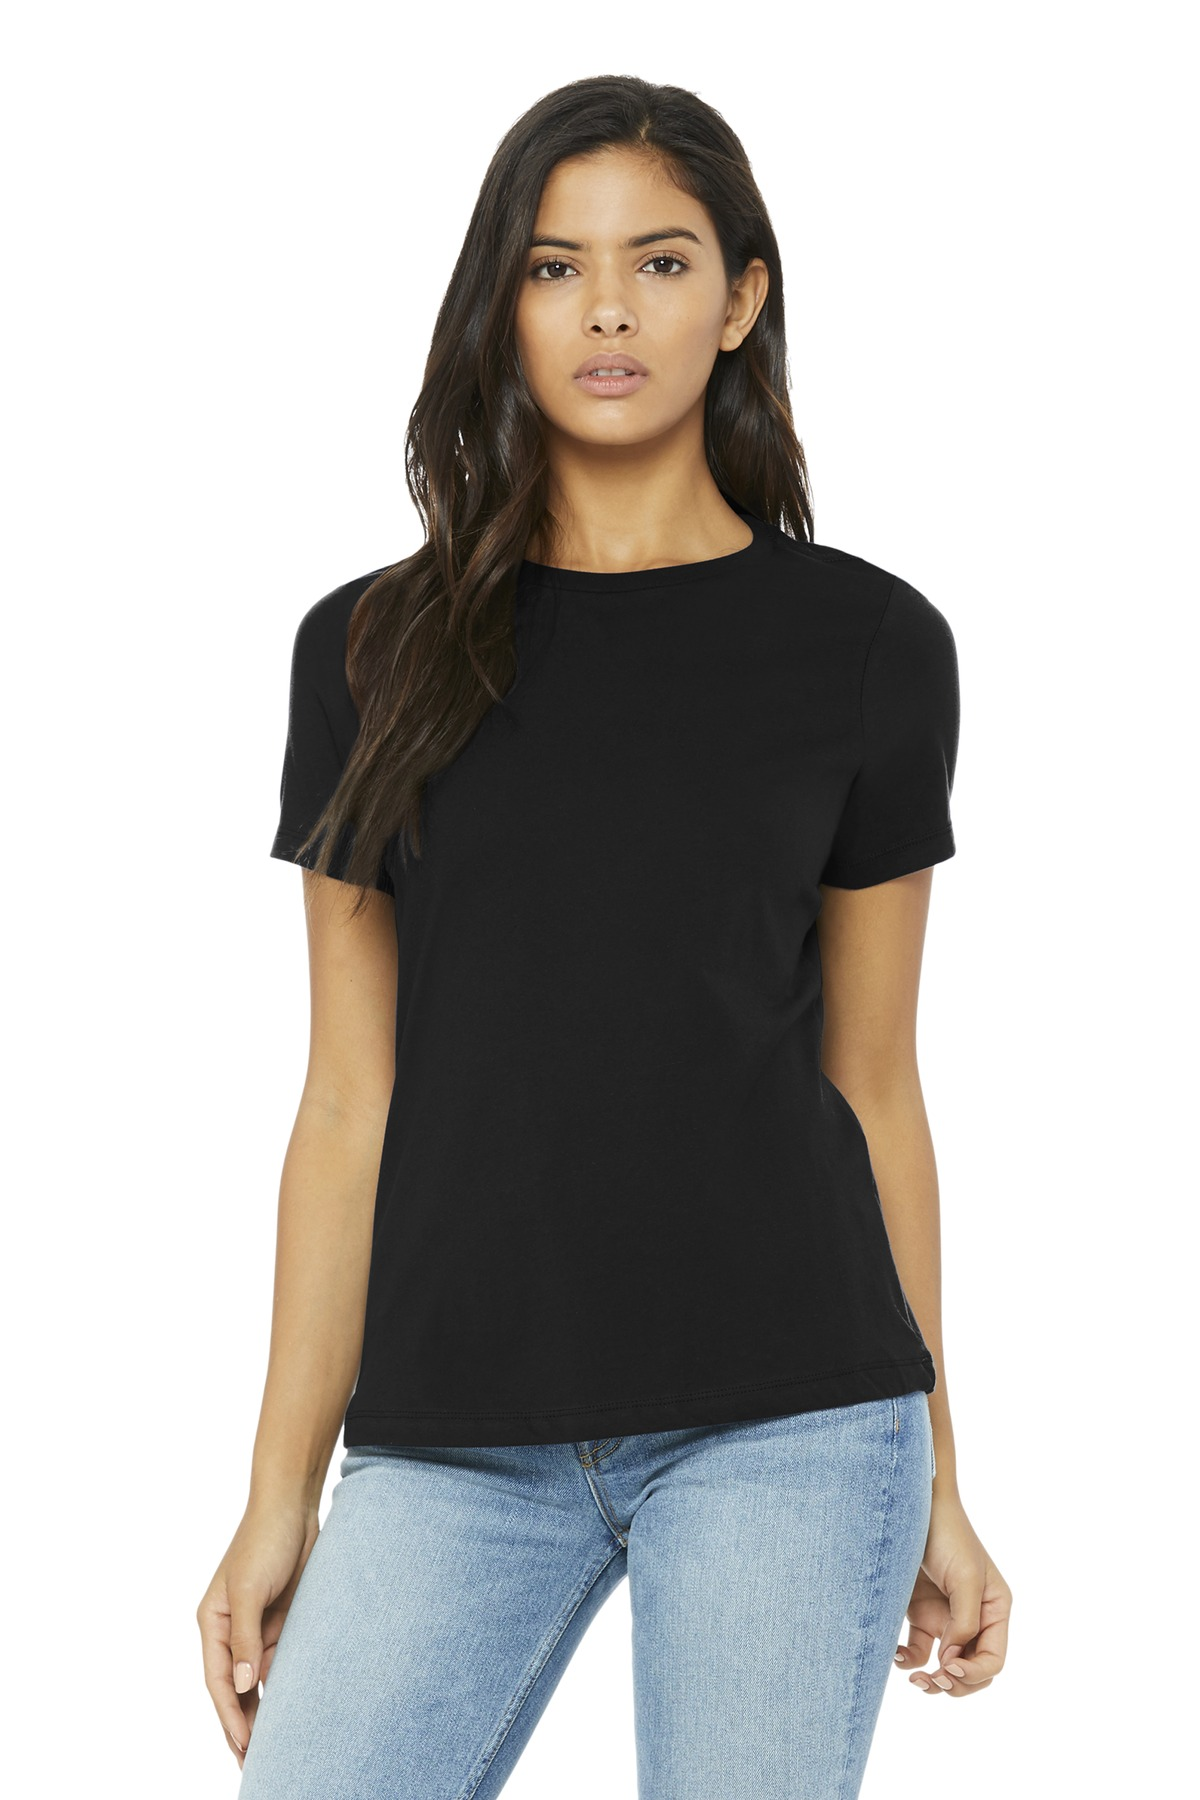 BELLA+CANVAS  ®  Women's Relaxed Jersey Short Sleeve Tee. BC6400 - Black